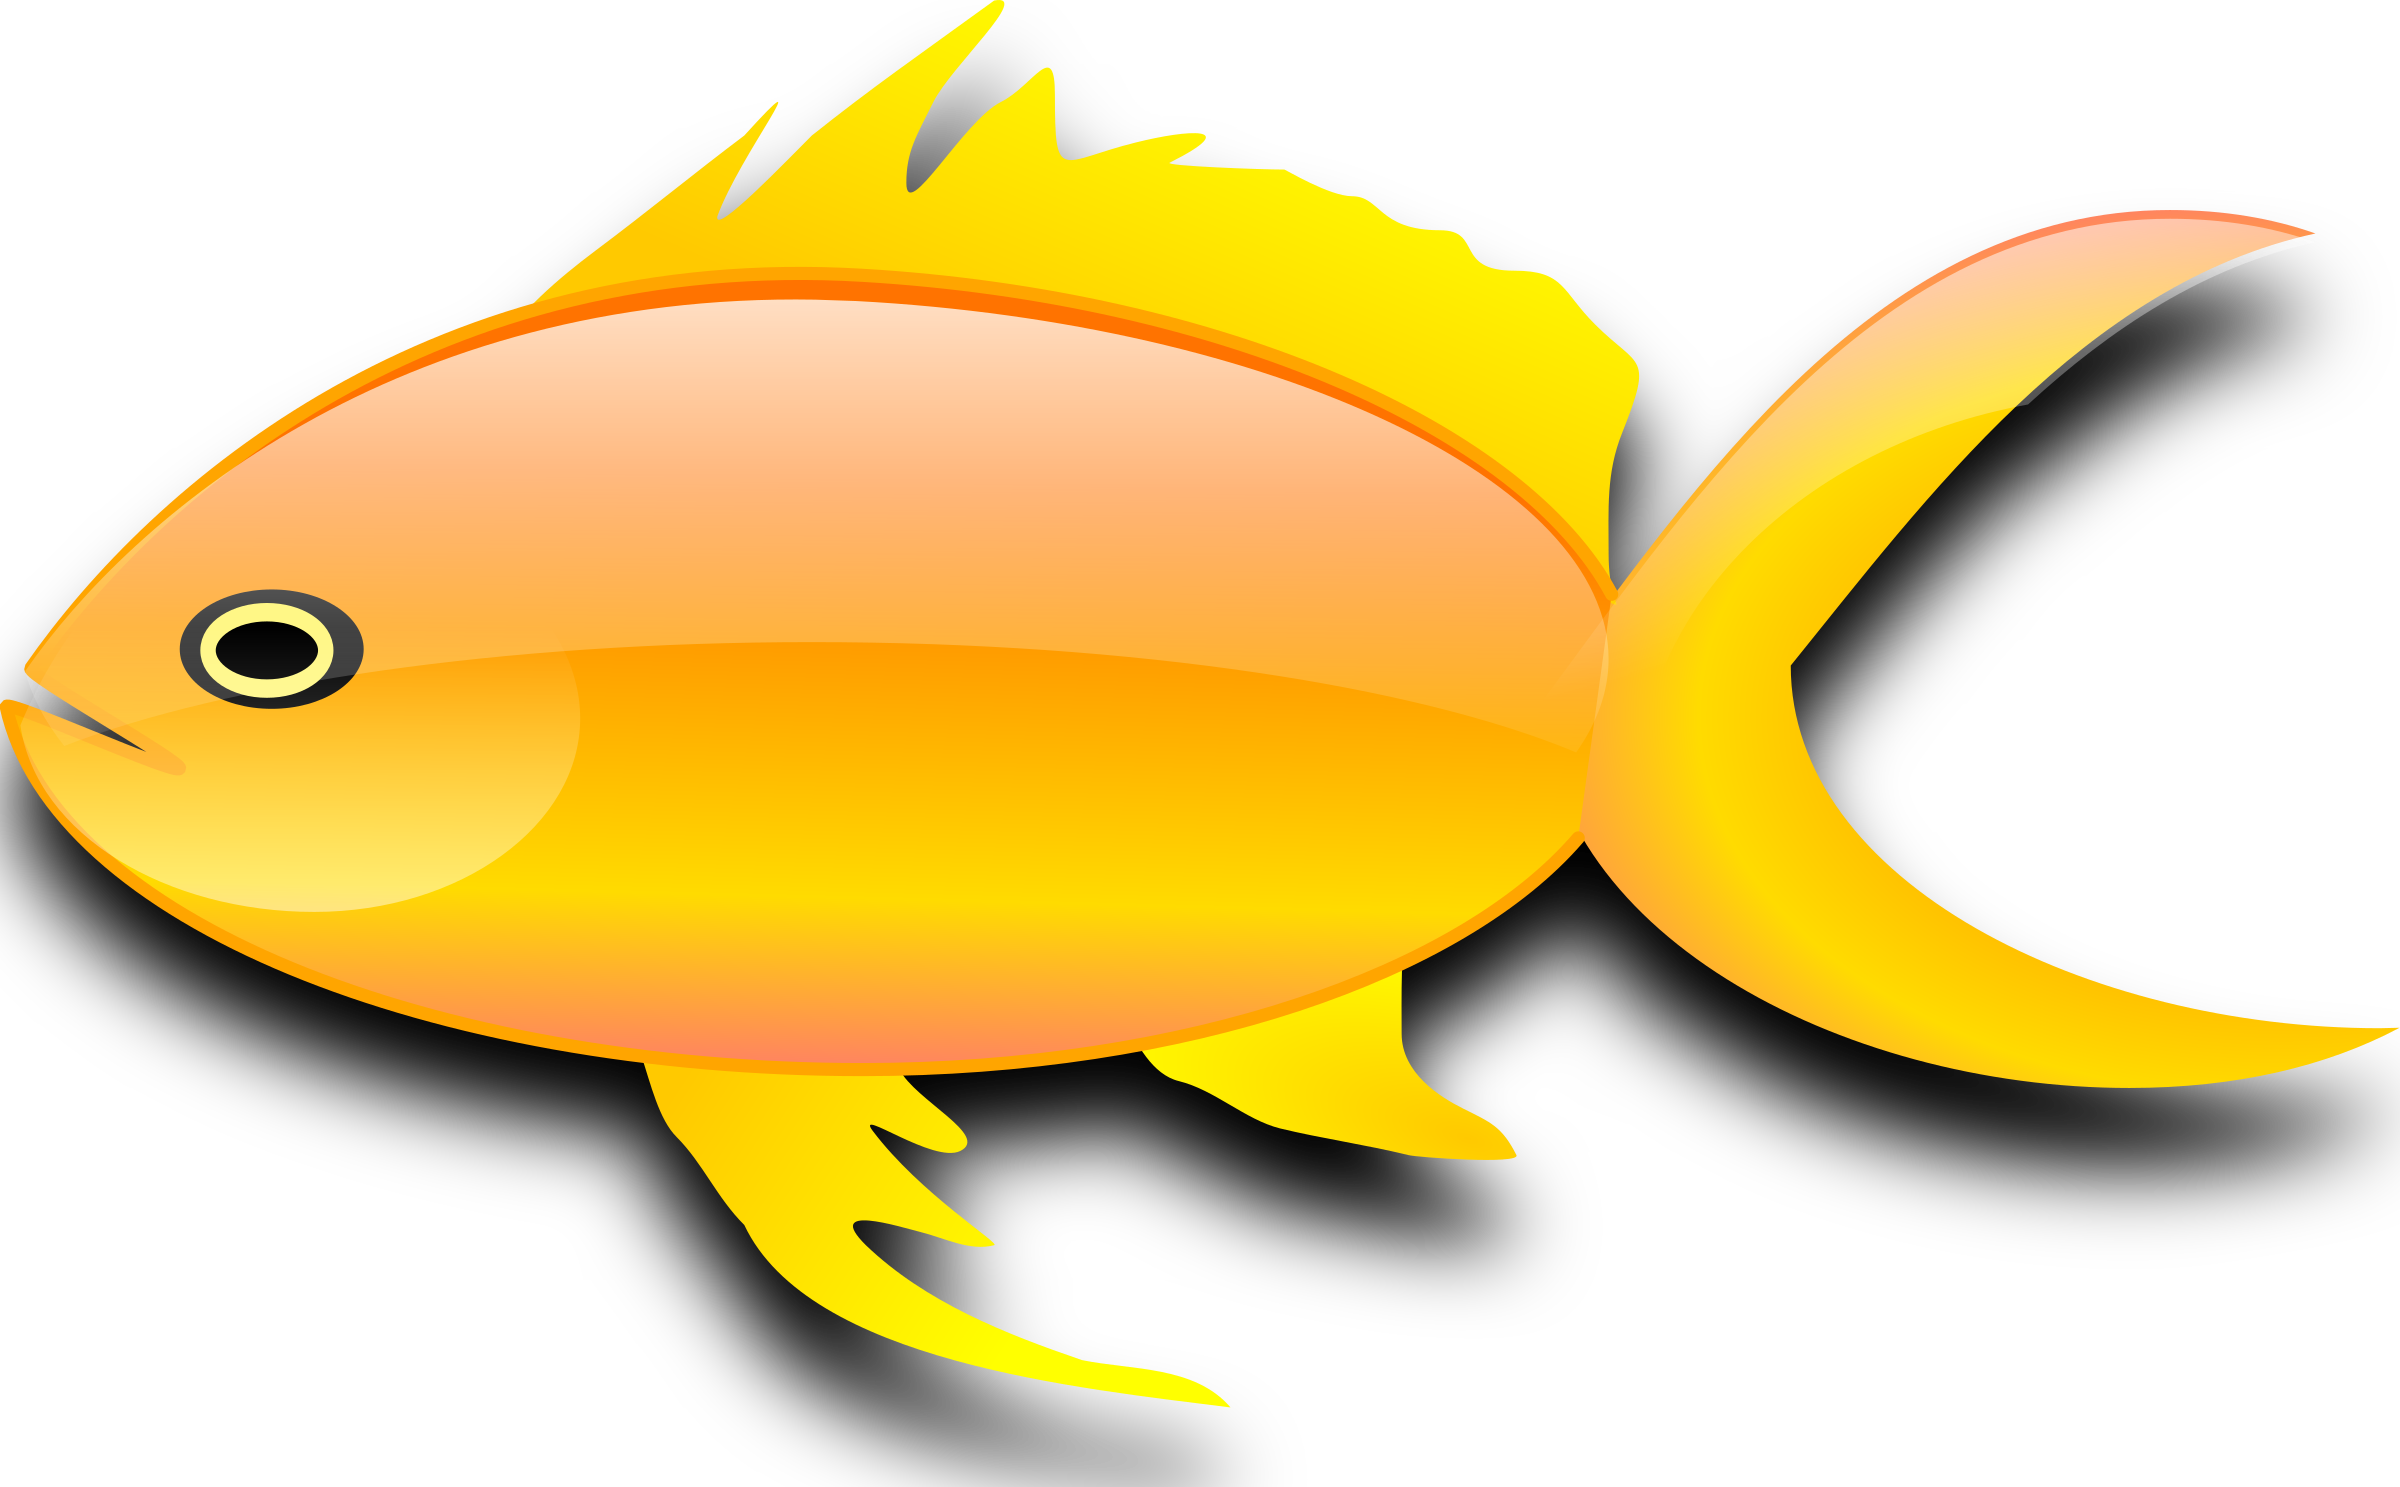 Pez dorado (gold fish) by pepinux